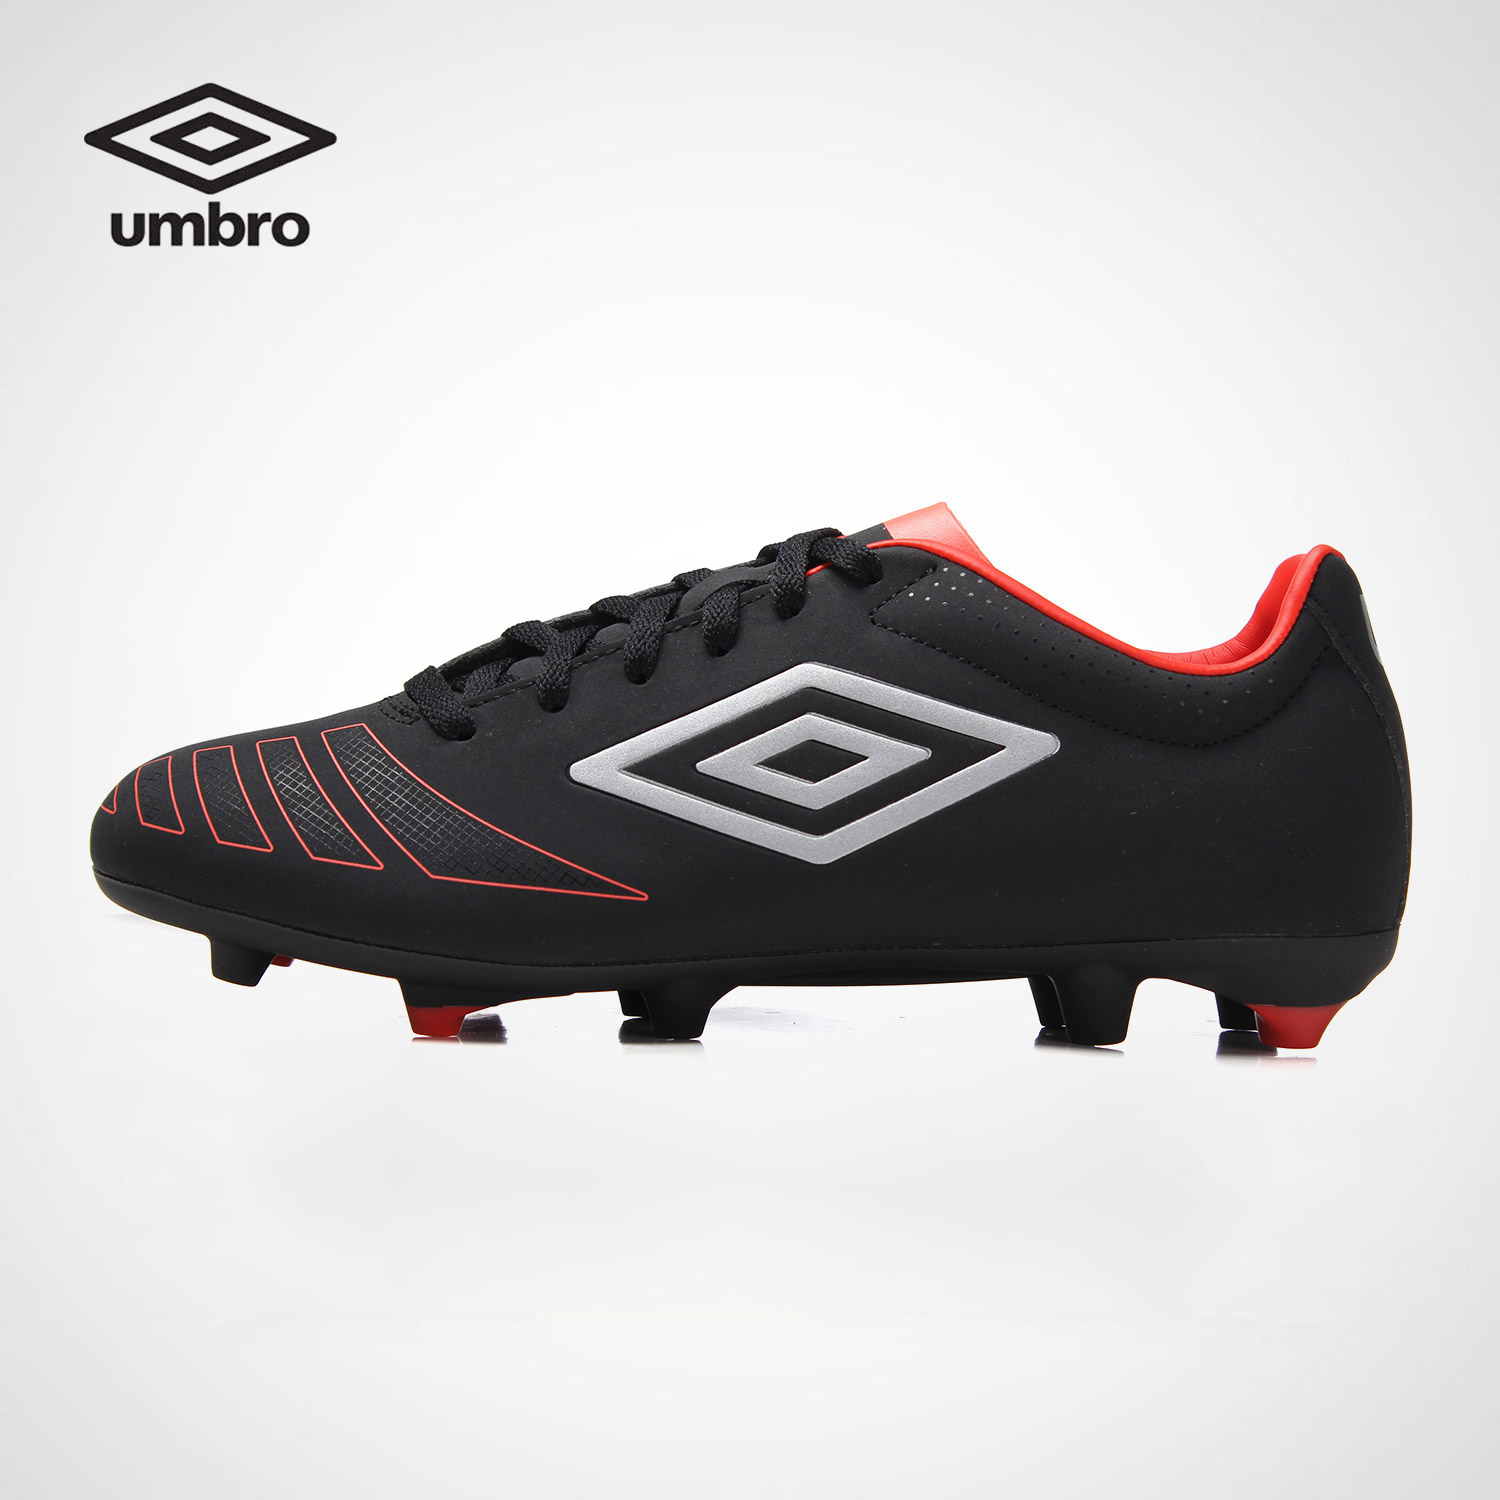 b51128772 Detail Feedback Questions about Umbro Football Shoes Men New Rubber Soles  Anti Slip Adult Students Professional Training Sneakers Sports Shoes  UCB90105 on ...